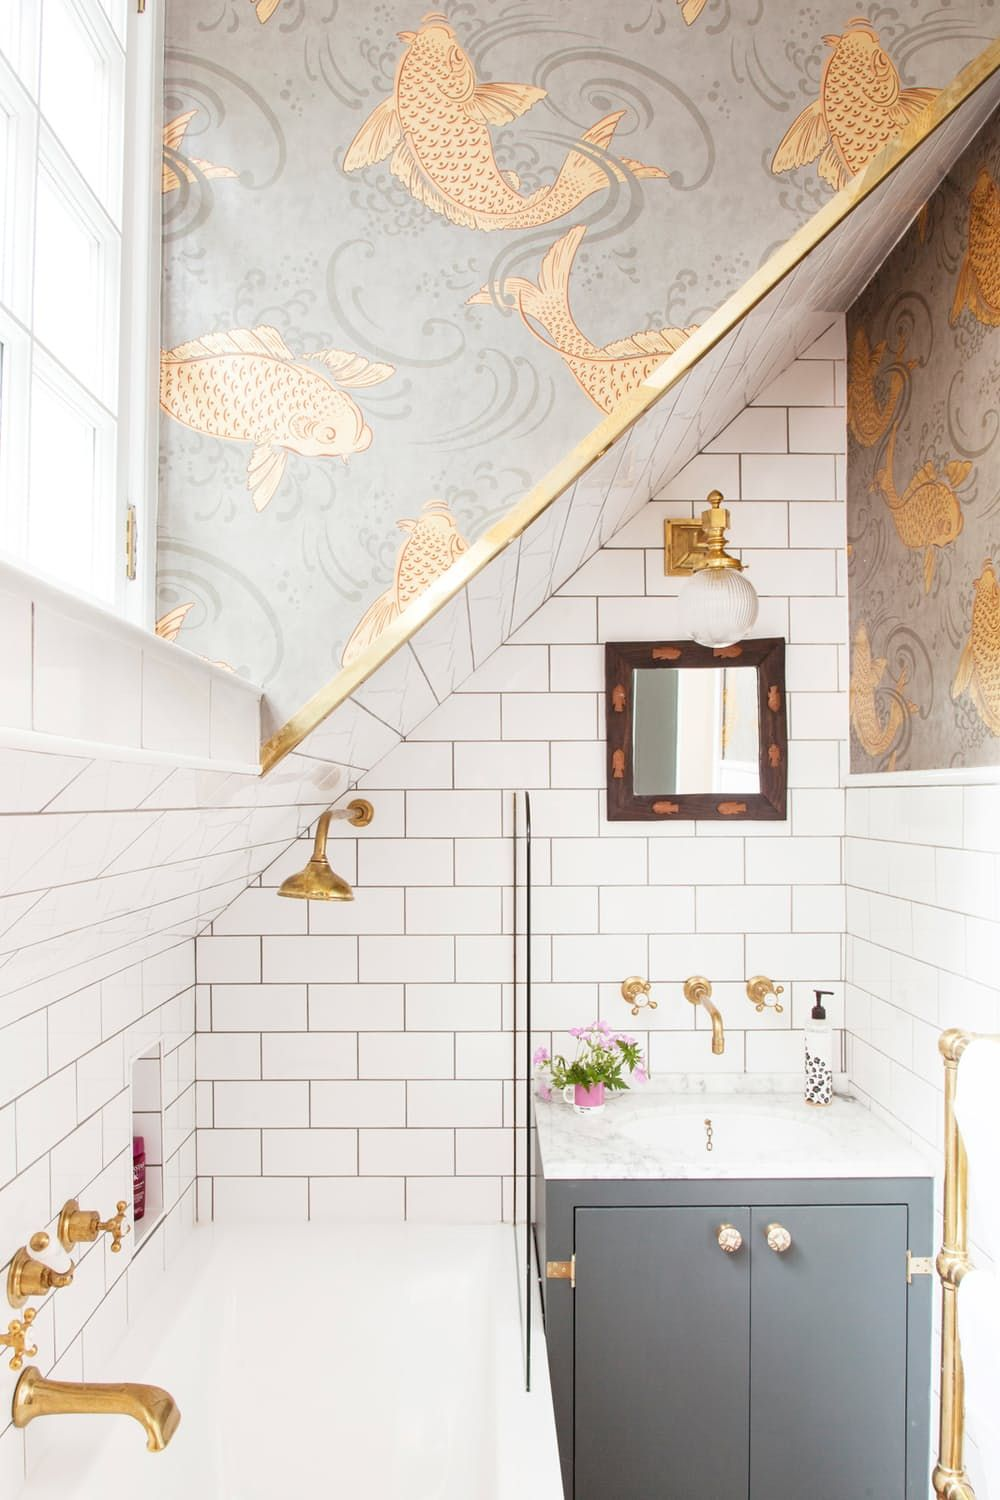 Stylish Remodeling Ideas for Small Bathrooms | Baths | Pinterest ...